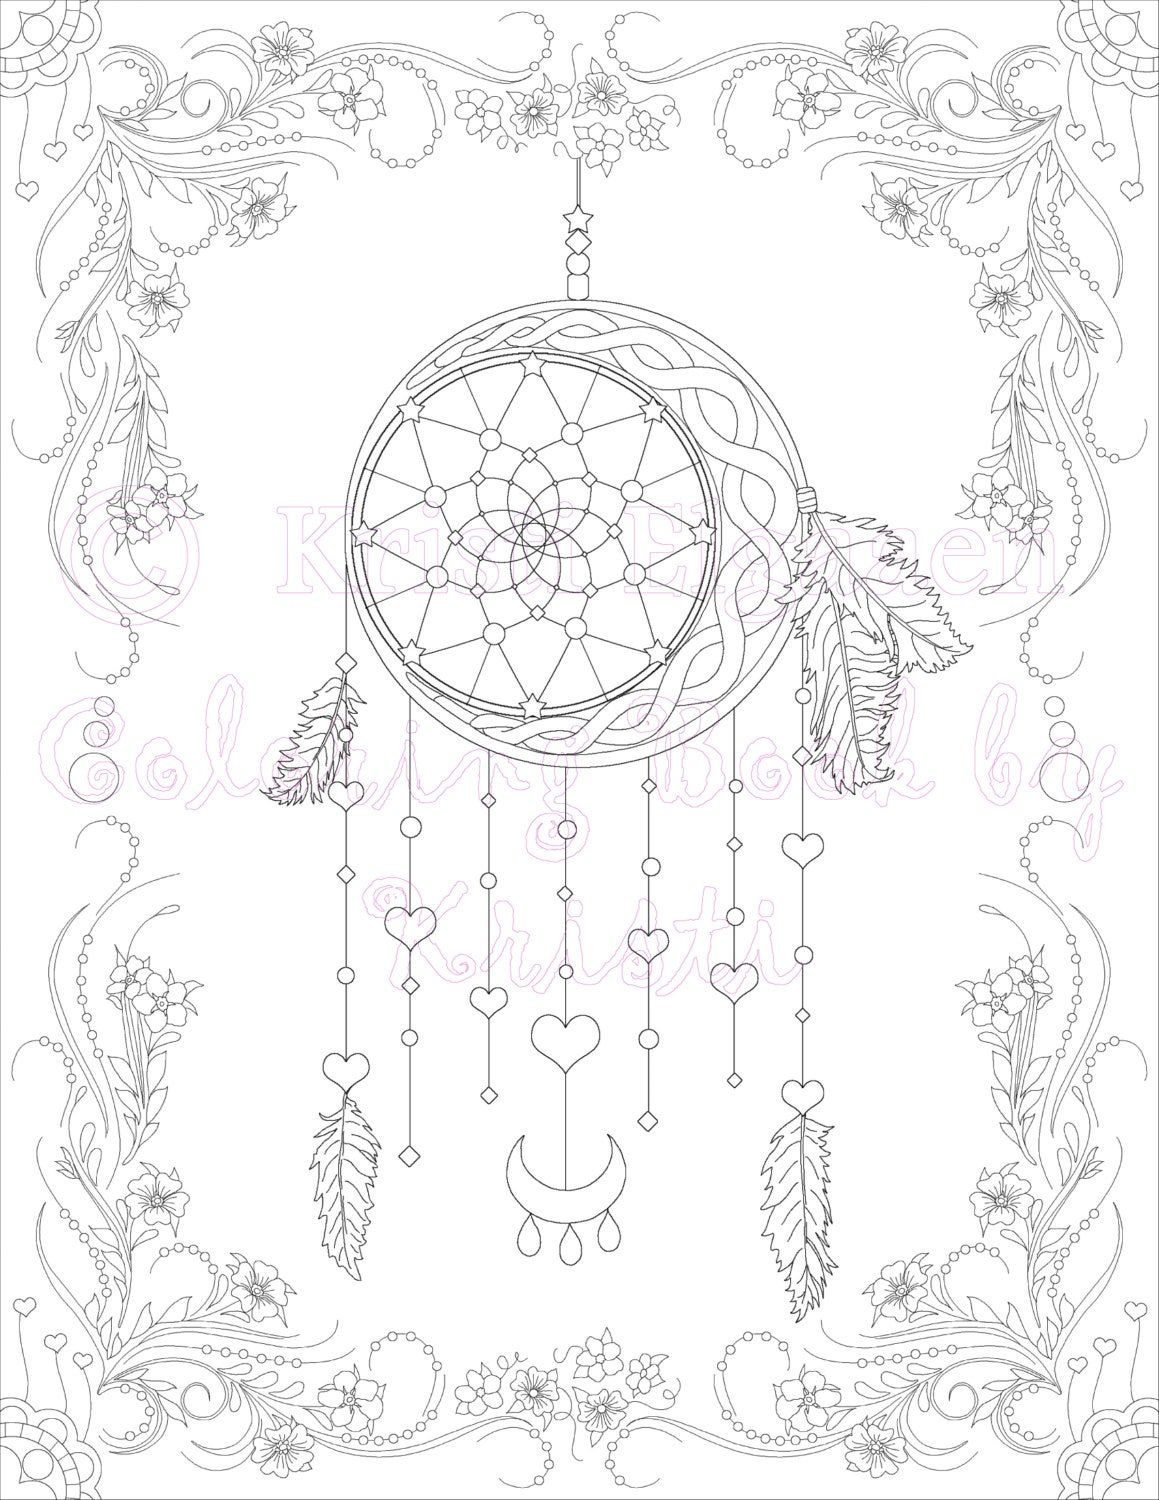 Little Witches and Wild Things, Adult Coloring Page